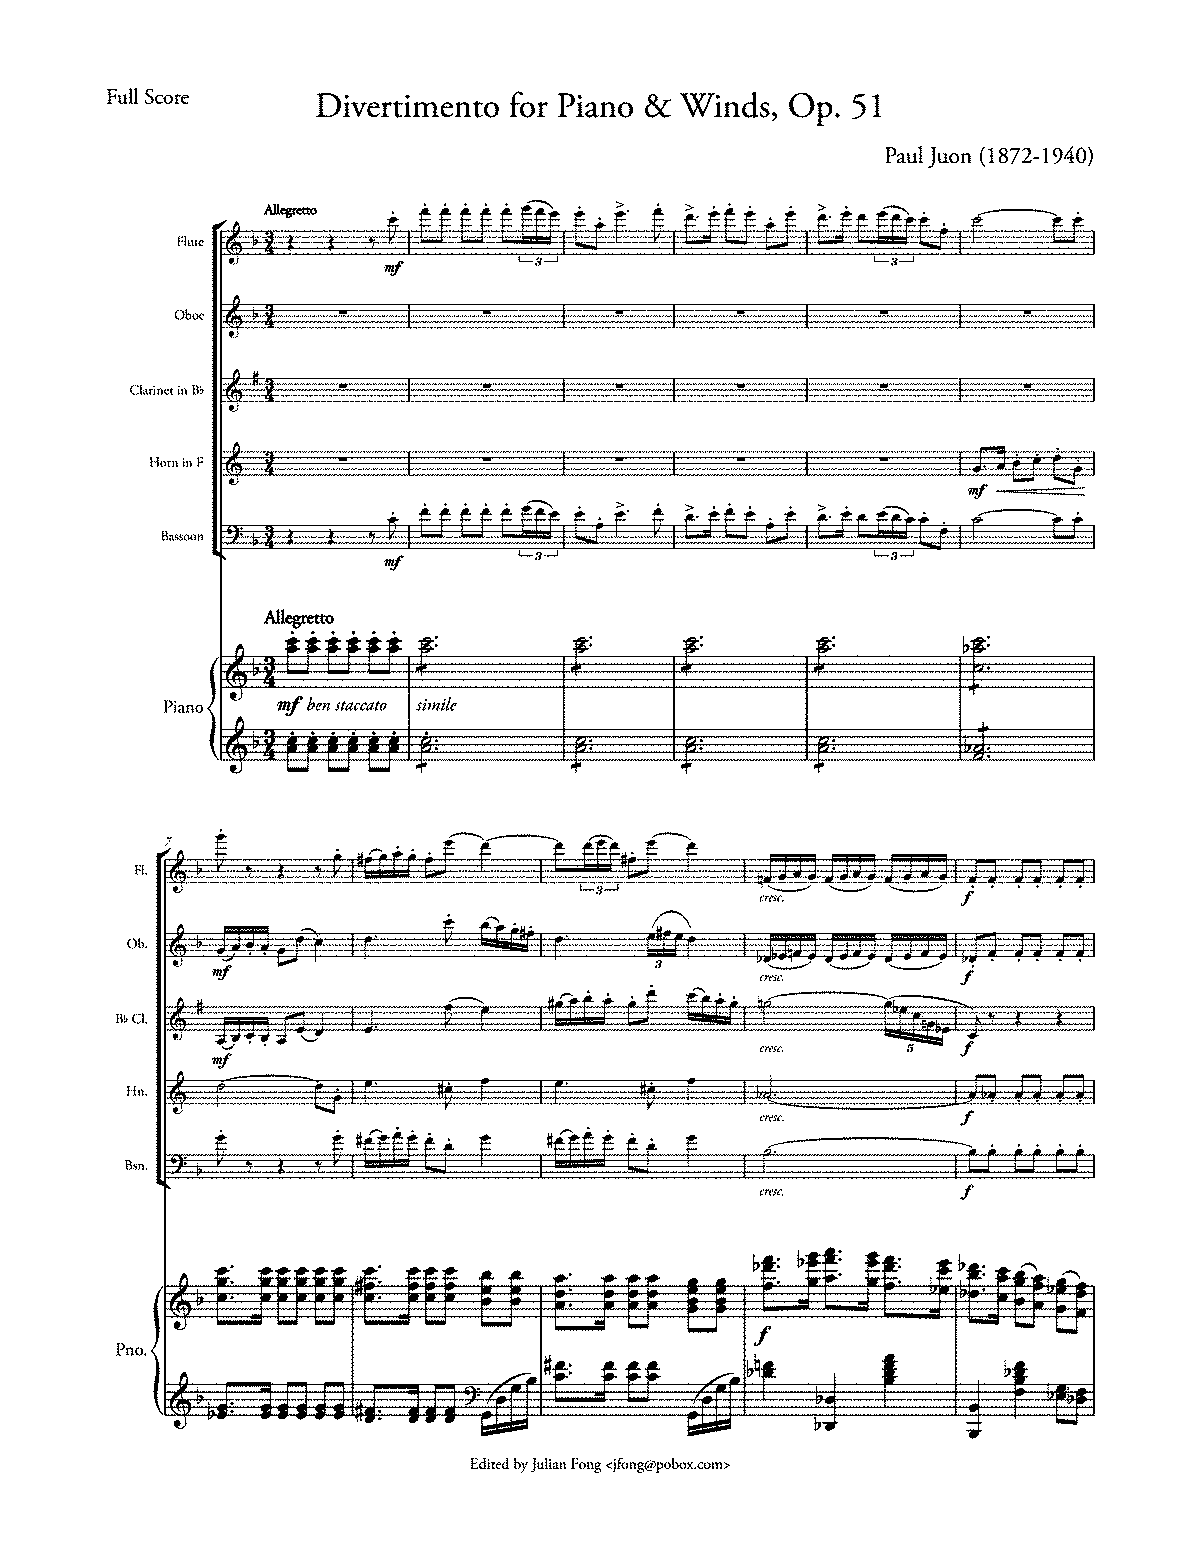 PMLP36912-Divertimento for Piano & Winds, Op 51.pdf